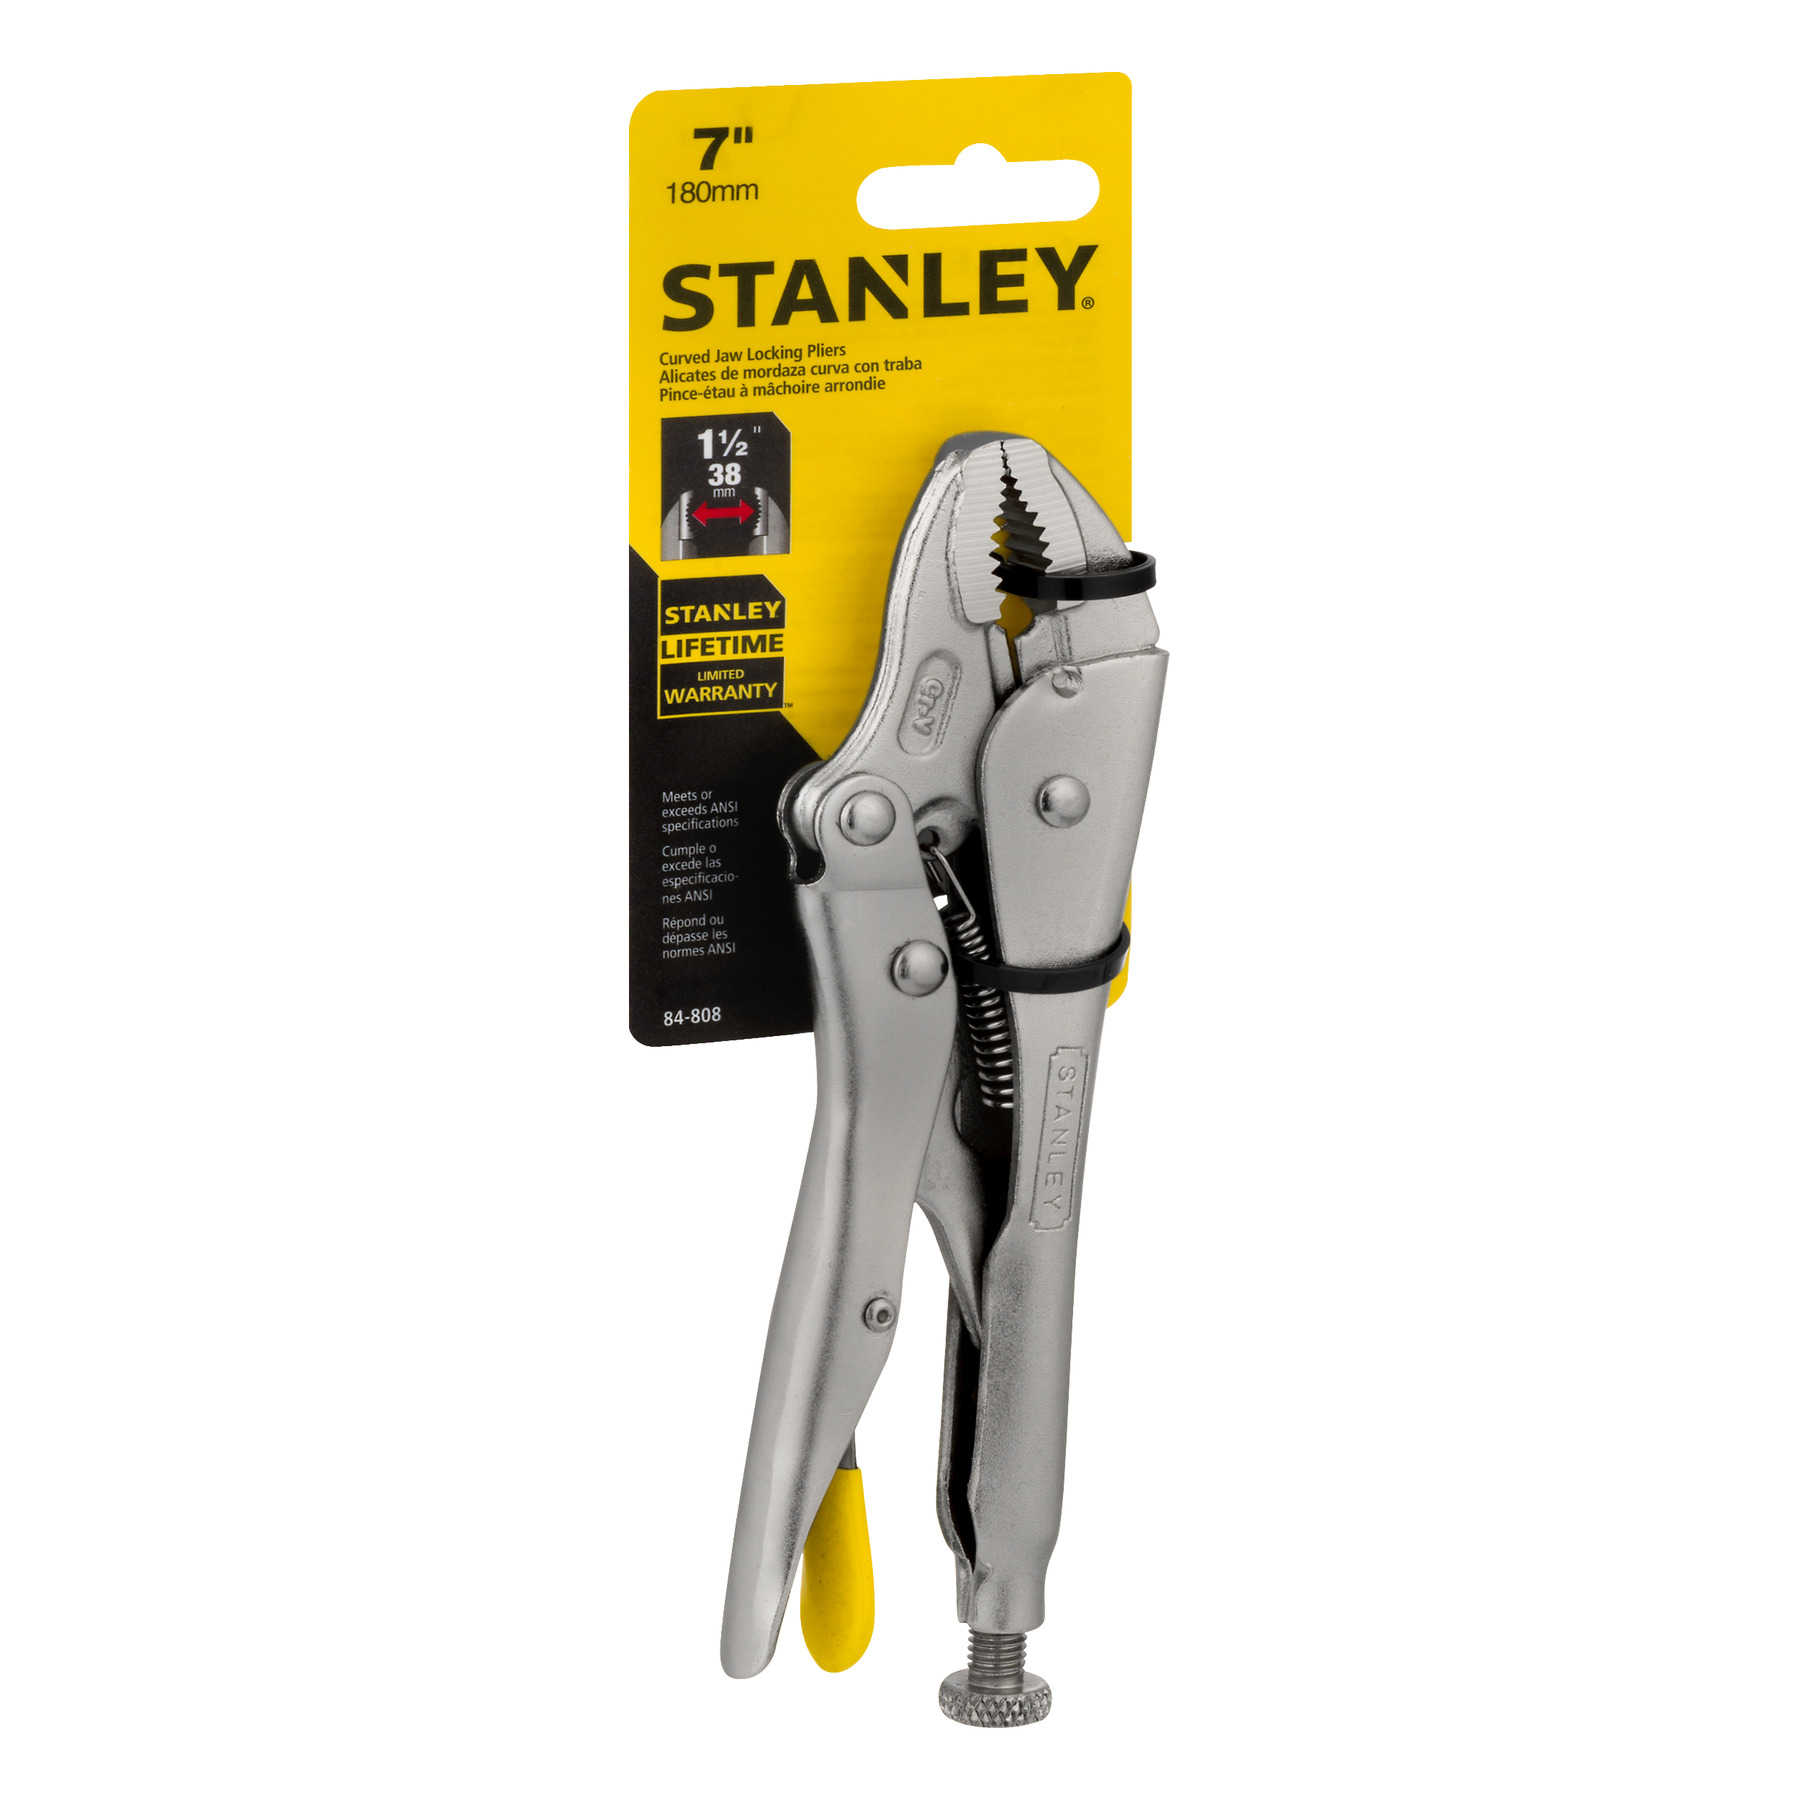 Stanley Curved Jaw Locking Pliers 7', 1.0 CT